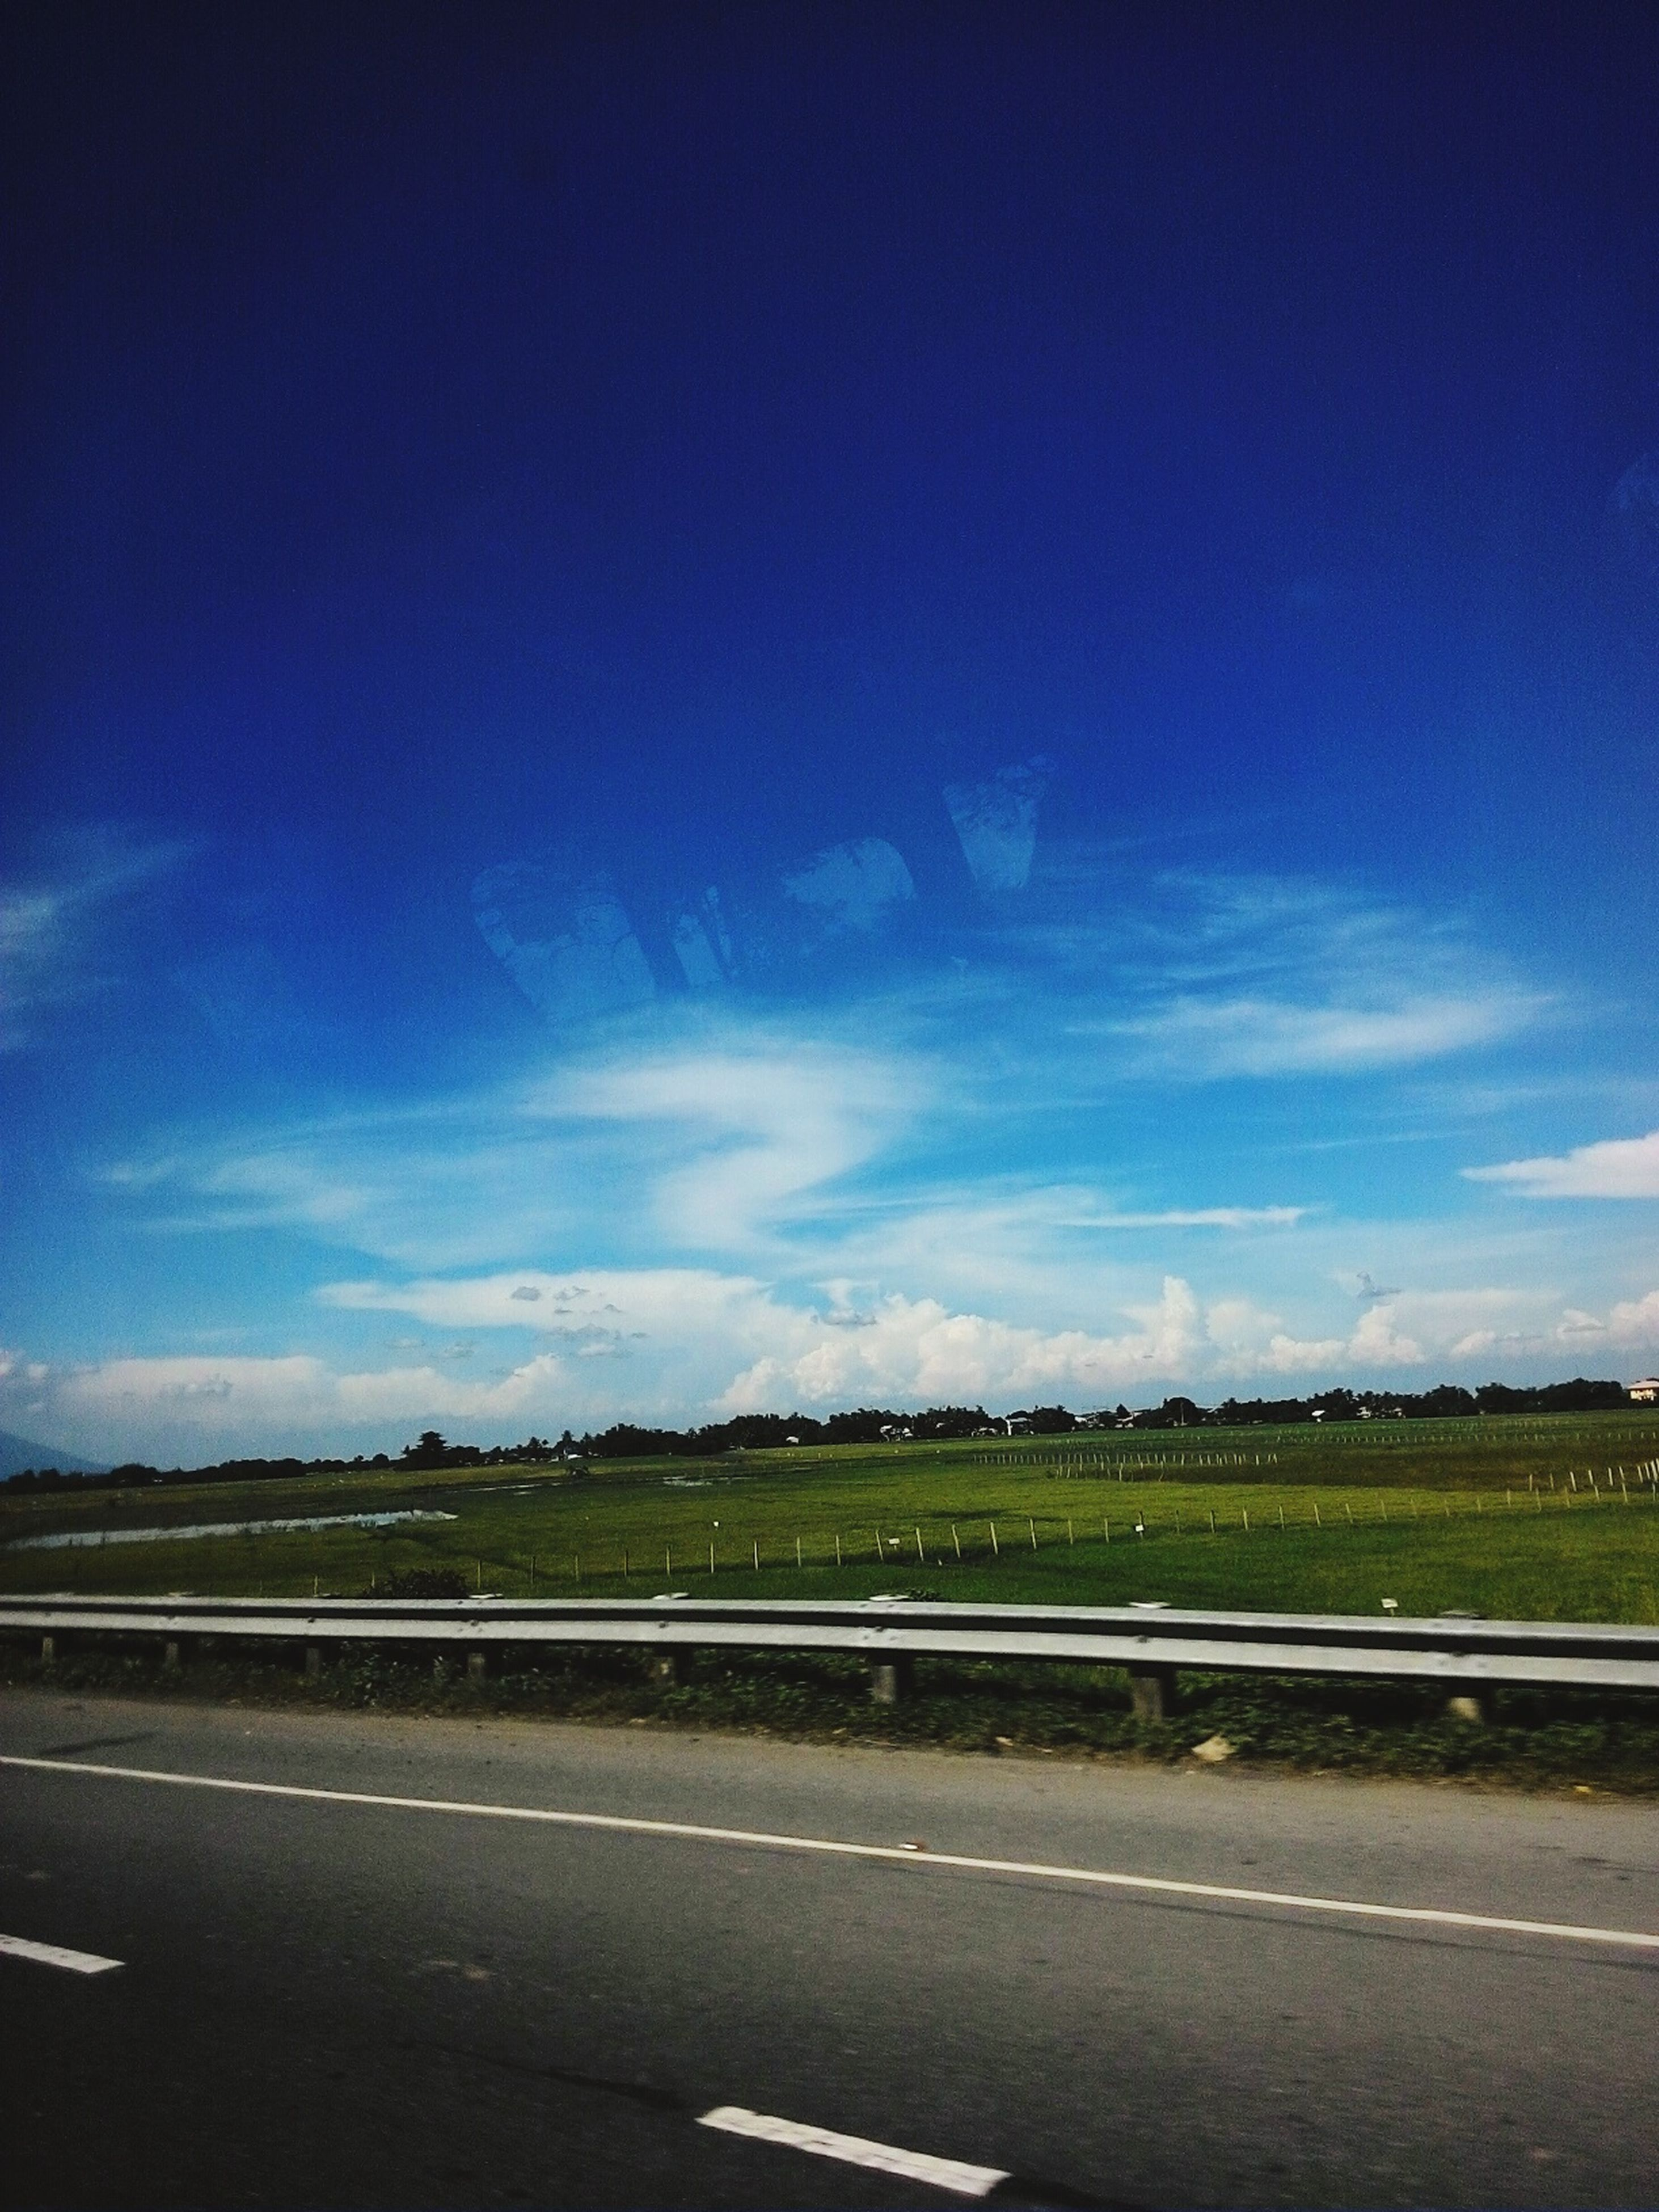 road, landscape, blue, sky, road marking, transportation, tranquil scene, tranquility, empty, scenics, dividing line, cloud, empty road, field, the way forward, country road, day, cloud - sky, solitude, outdoors, nature, non-urban scene, rural scene, countryside, long, beauty in nature, green color, vacations, tourism, crash barrier